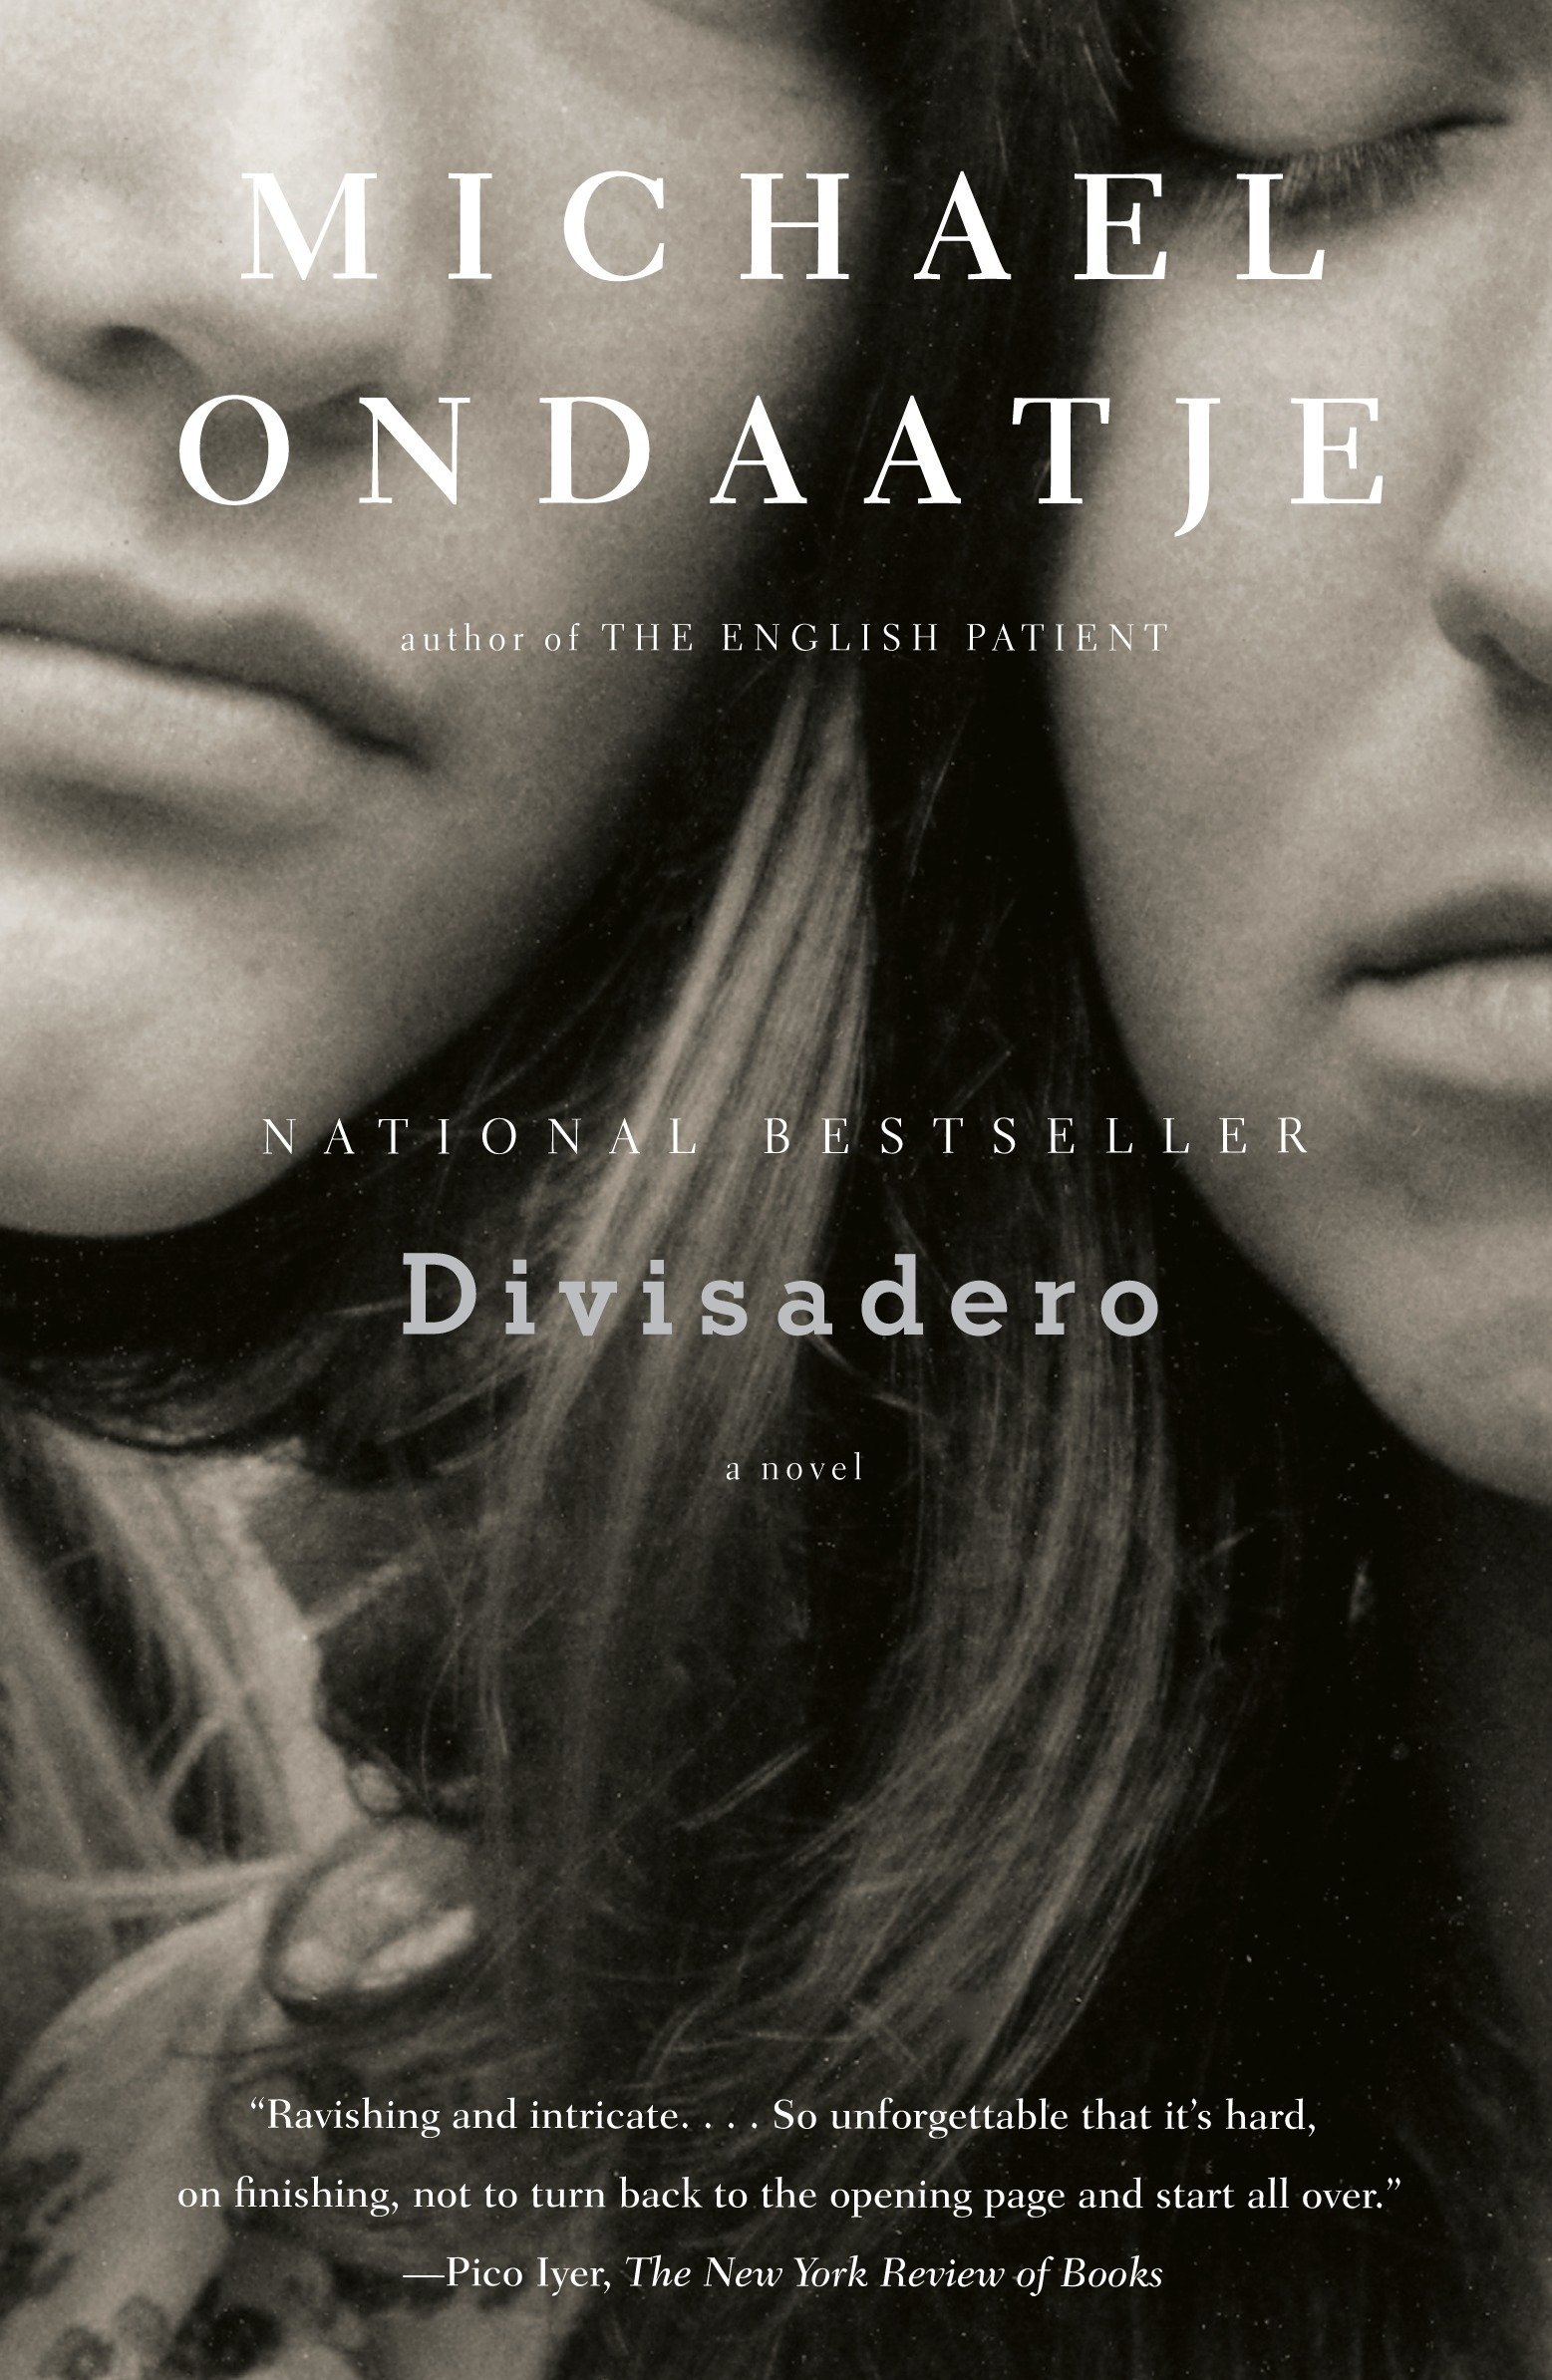 Divisadero Paperback – April 22, 2008 Michael Ondaatje Vintage International 0307279324 Literary